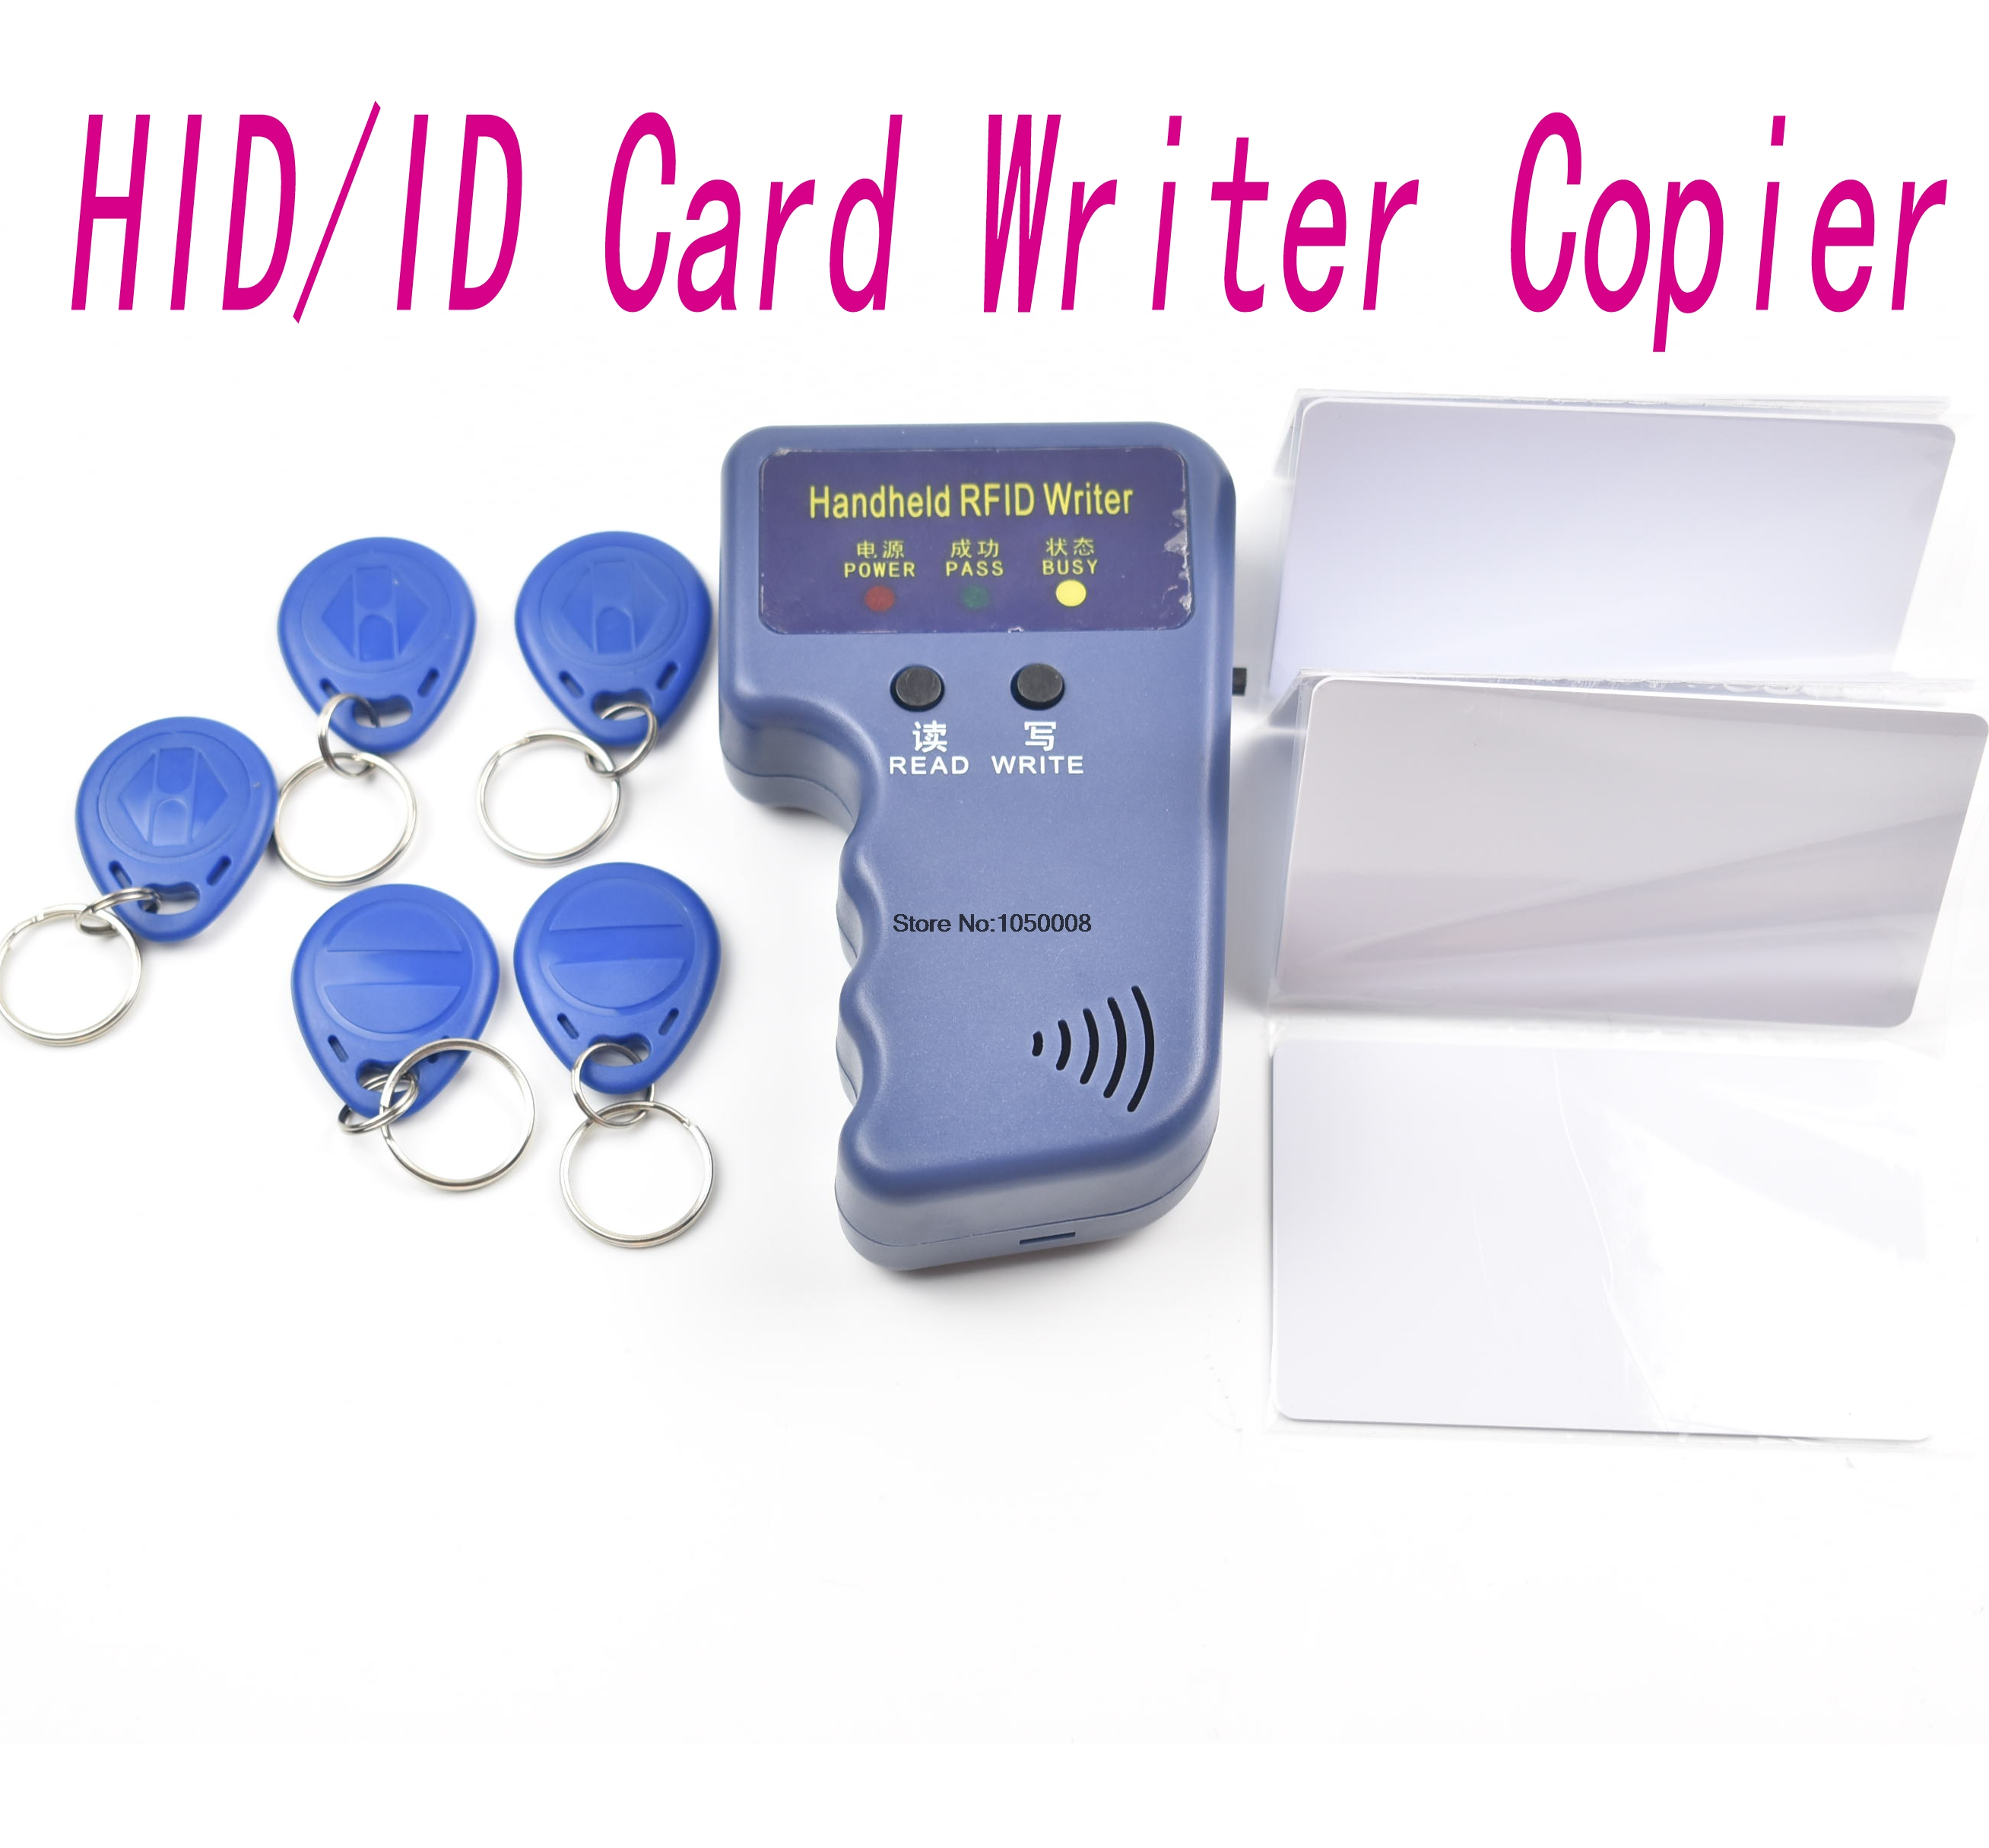 125khz handheld portable Reader writer cloner copier programmer to backup copy clone ID/HID card with writable t5577 card keyfob<br><br>Aliexpress